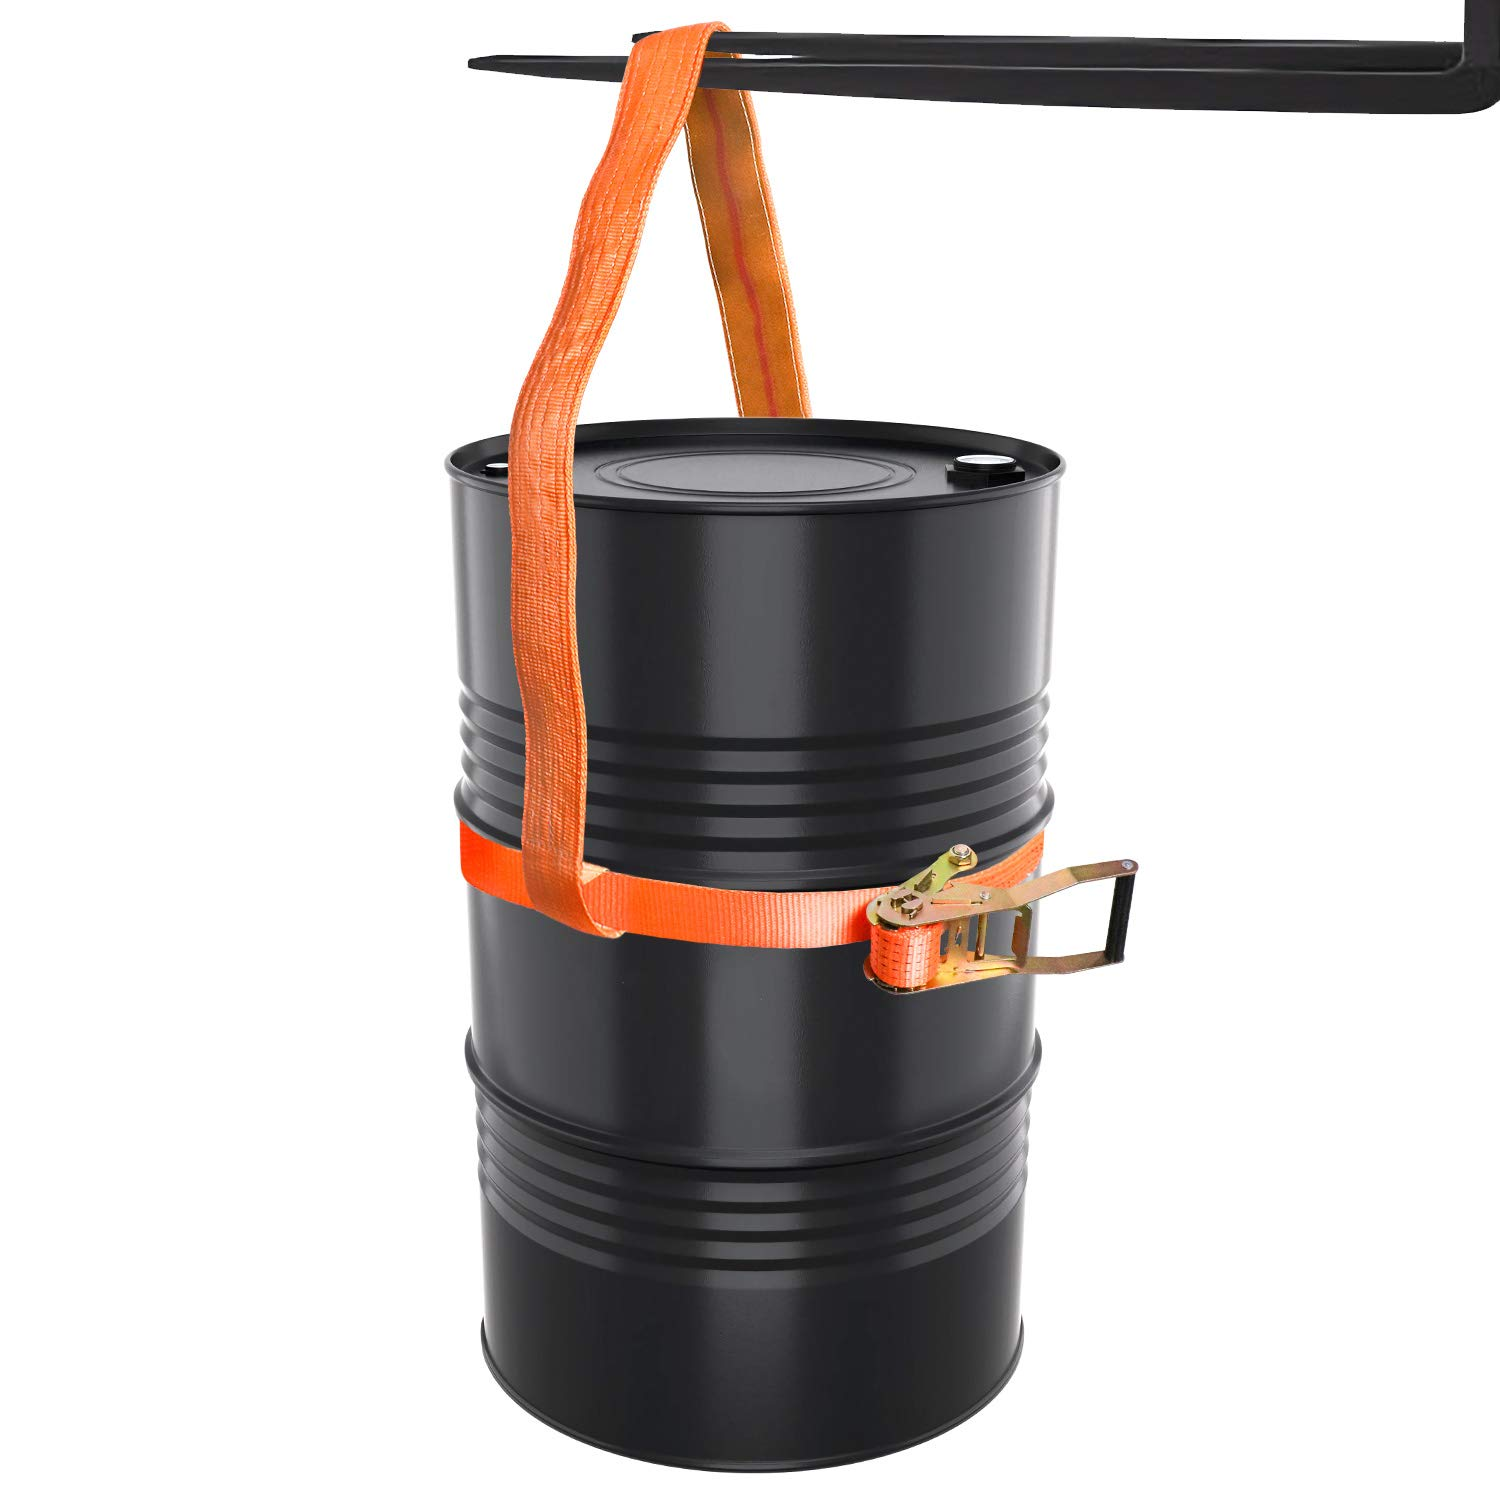 QWORK Drum Handling Sling for 55 Gallon Drum, Capacity up to 850 LB